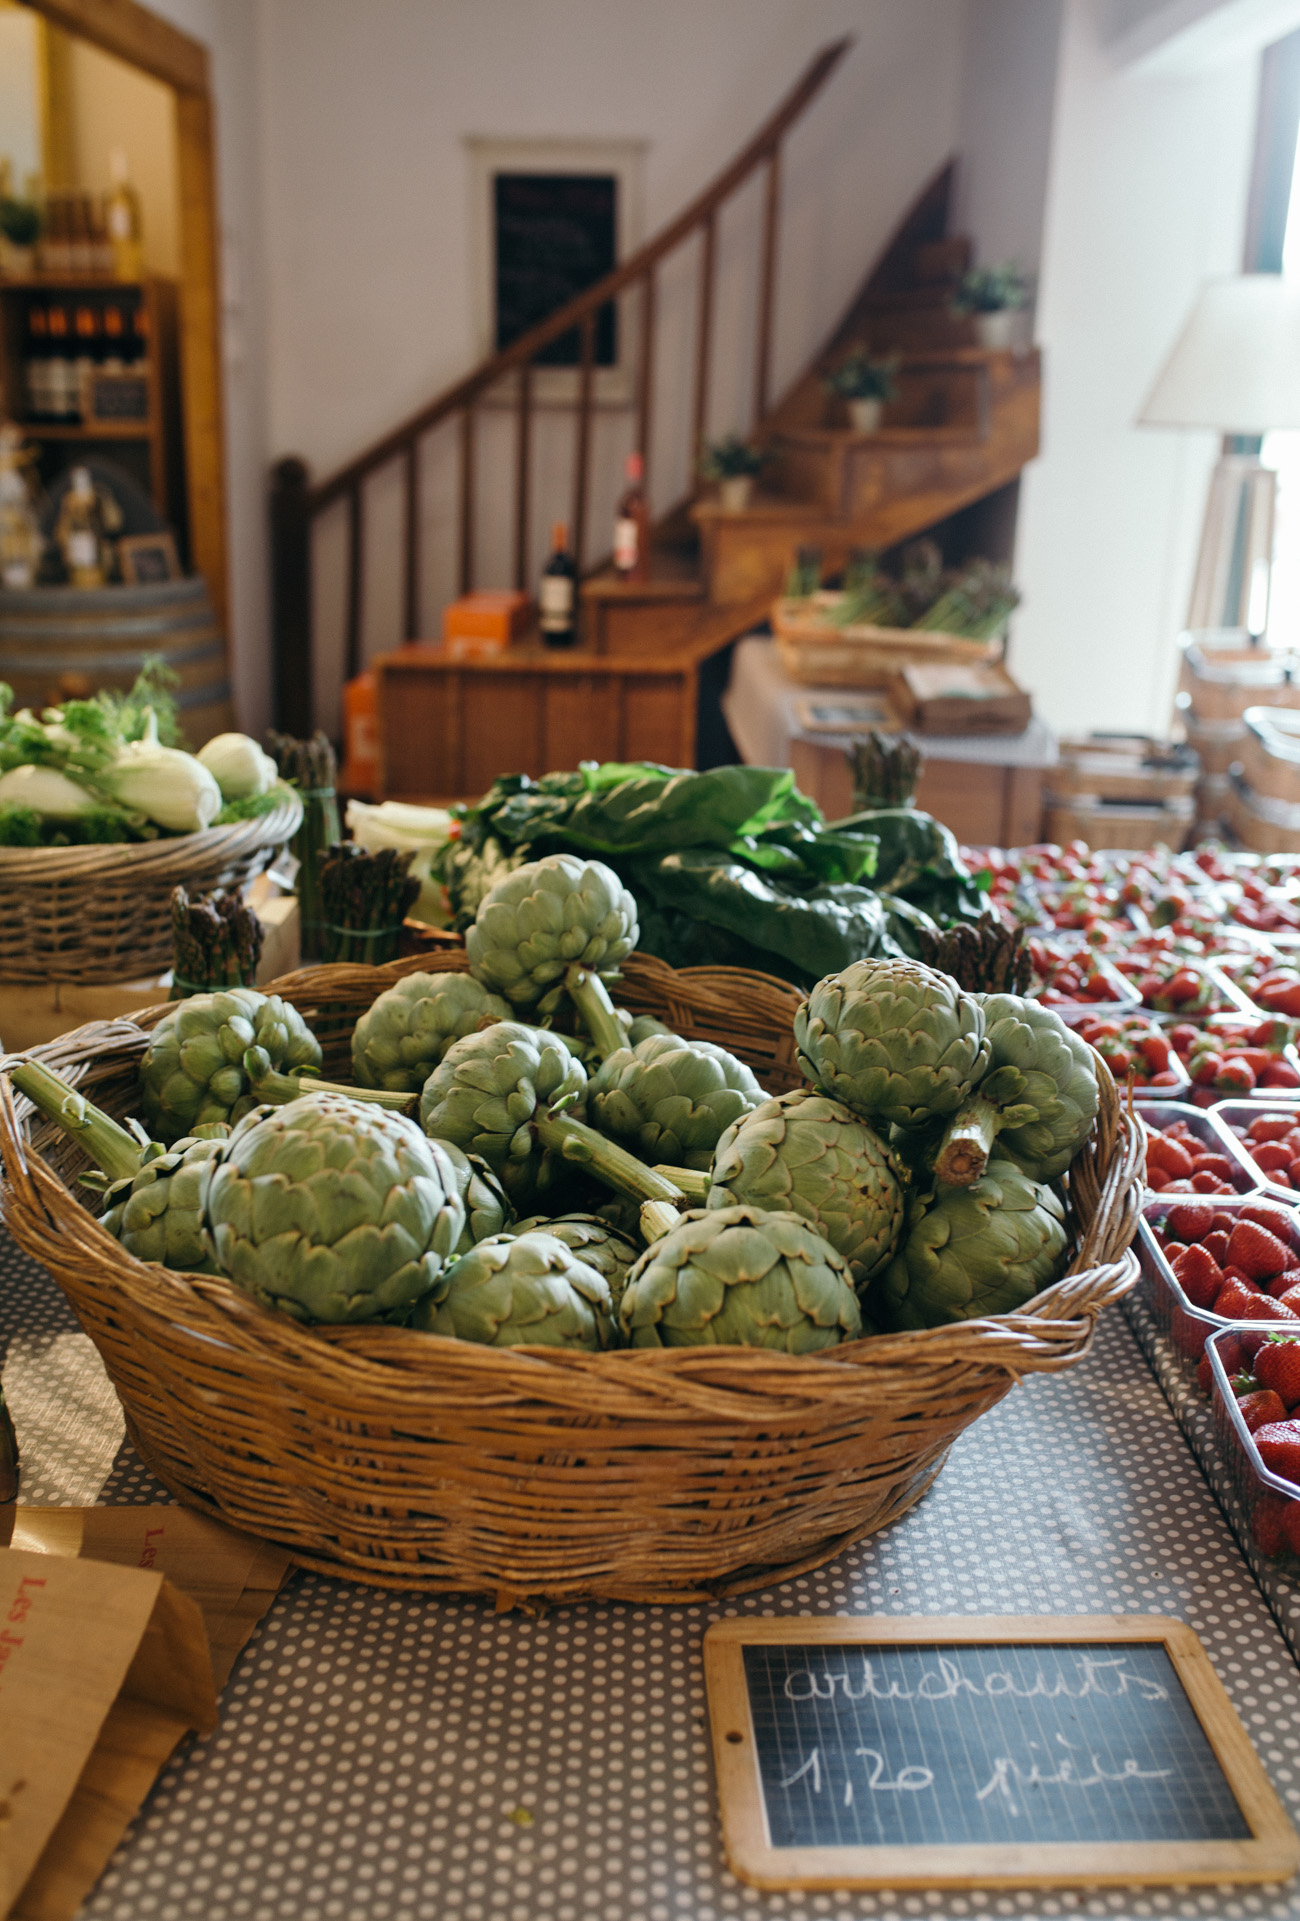 This farmhouse style vegetable display is worth obsession over